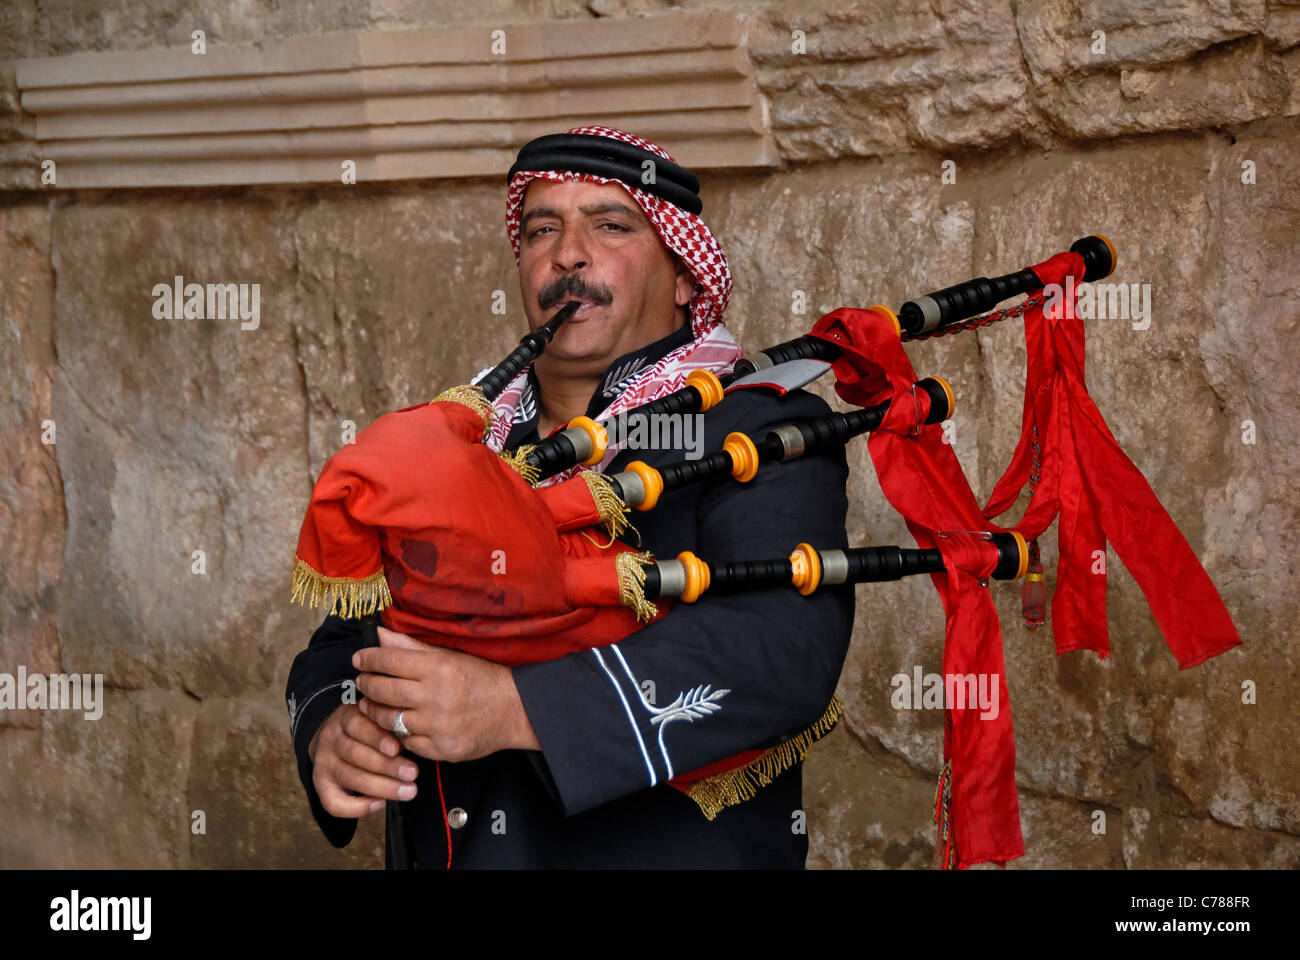 Jordanian bagpiper with a red bagpipe against a wall. Stock Photo